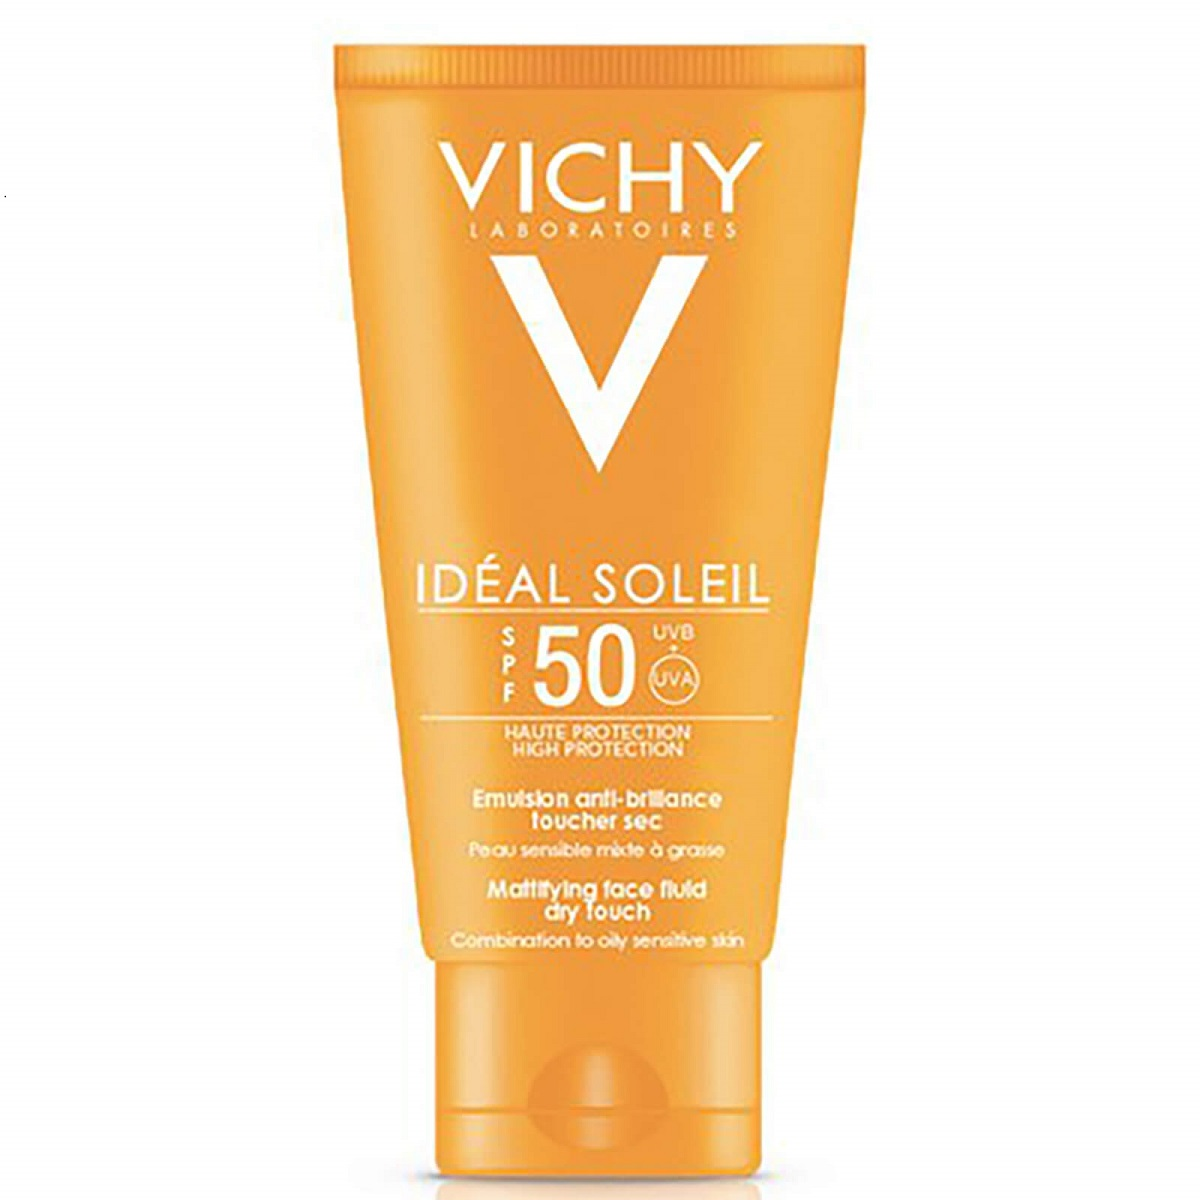 My Celebrity Life – VICHY Idéal Soleil Dry Touch Face Cream SPF 50